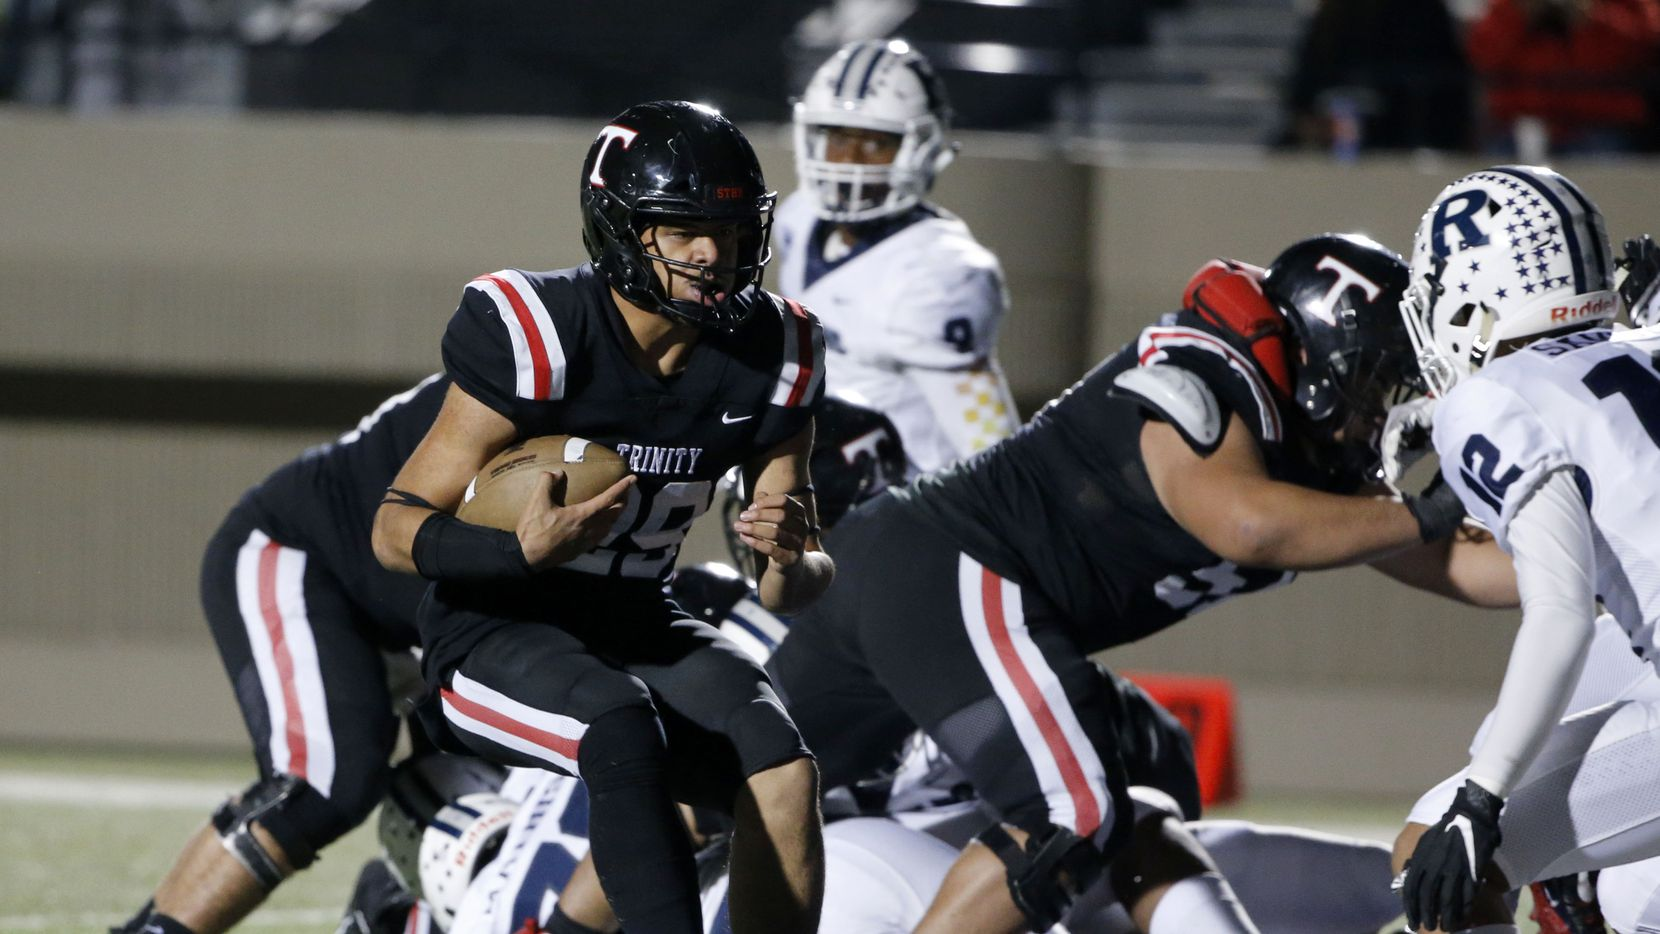 Euless Trinity's Jason Vaomotou (29) scores a rushing touchdown against Richland during the first half of their high school football game on Friday Nov. 8, 2019. (Michael Ainsworth/Special Contributor)